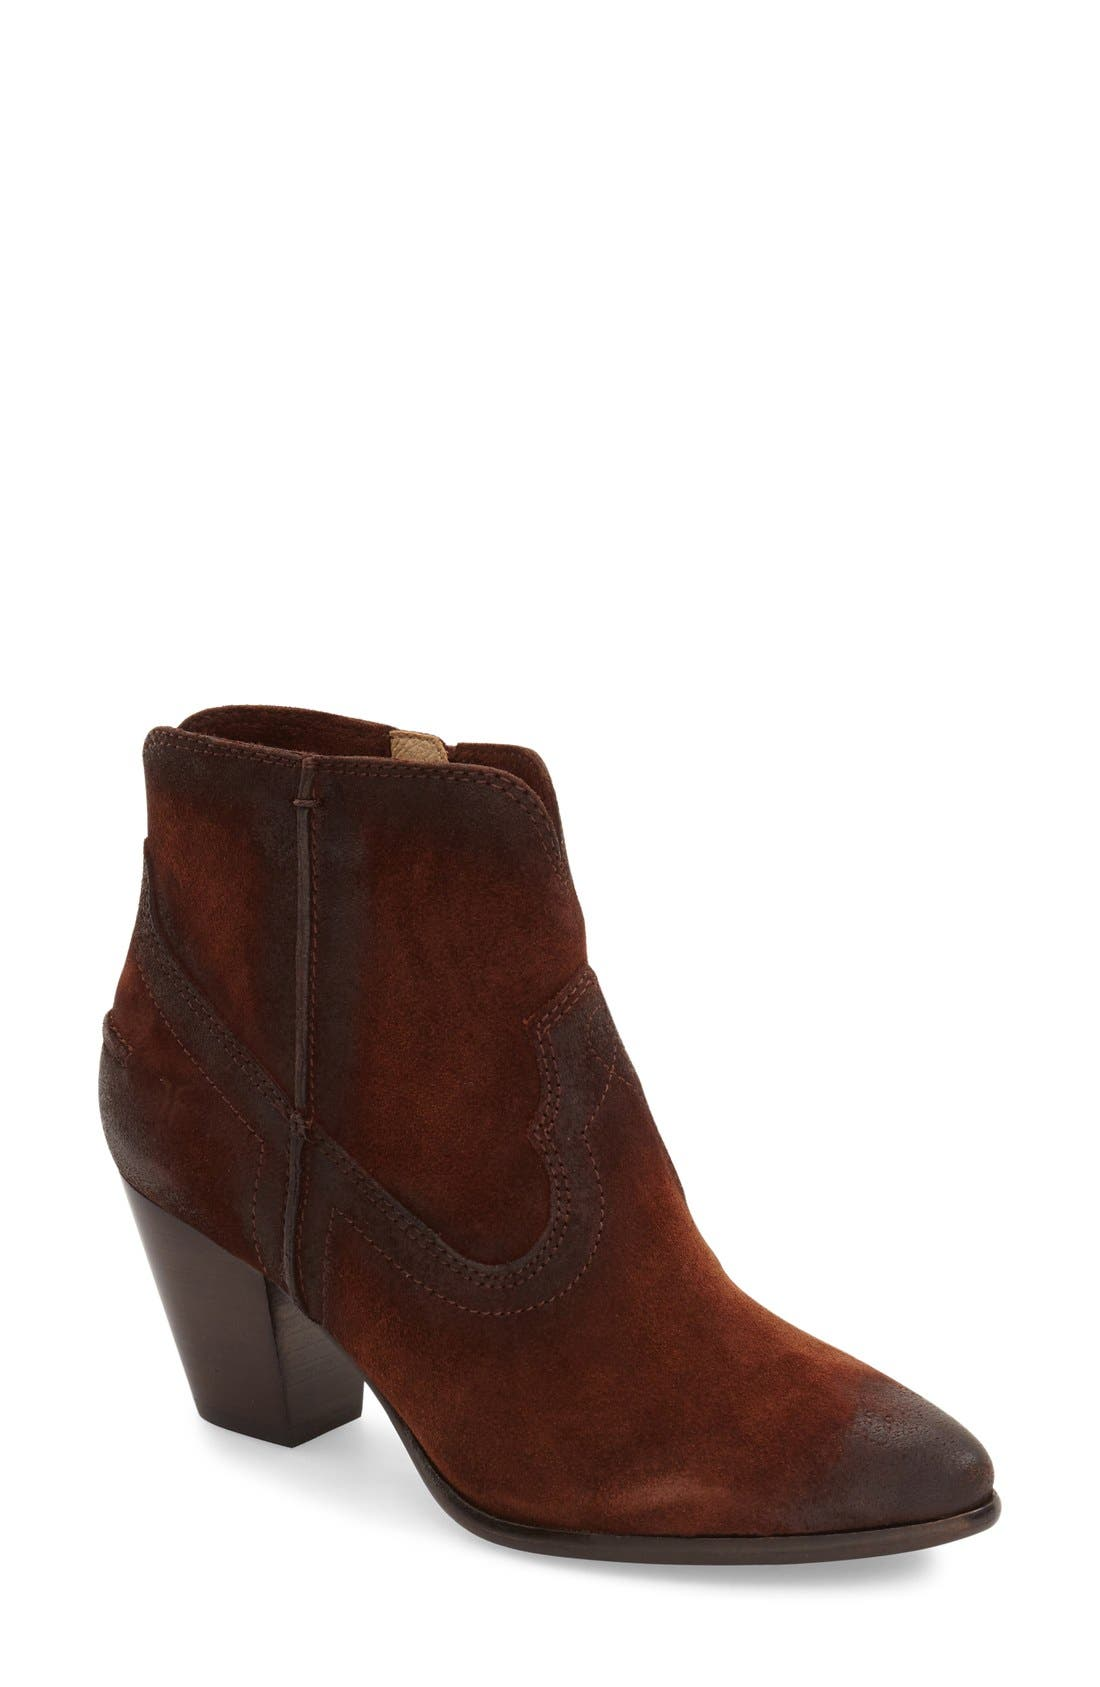 Alternate Image 1 Selected - Frye 'Renee' Western Bootie (Women)